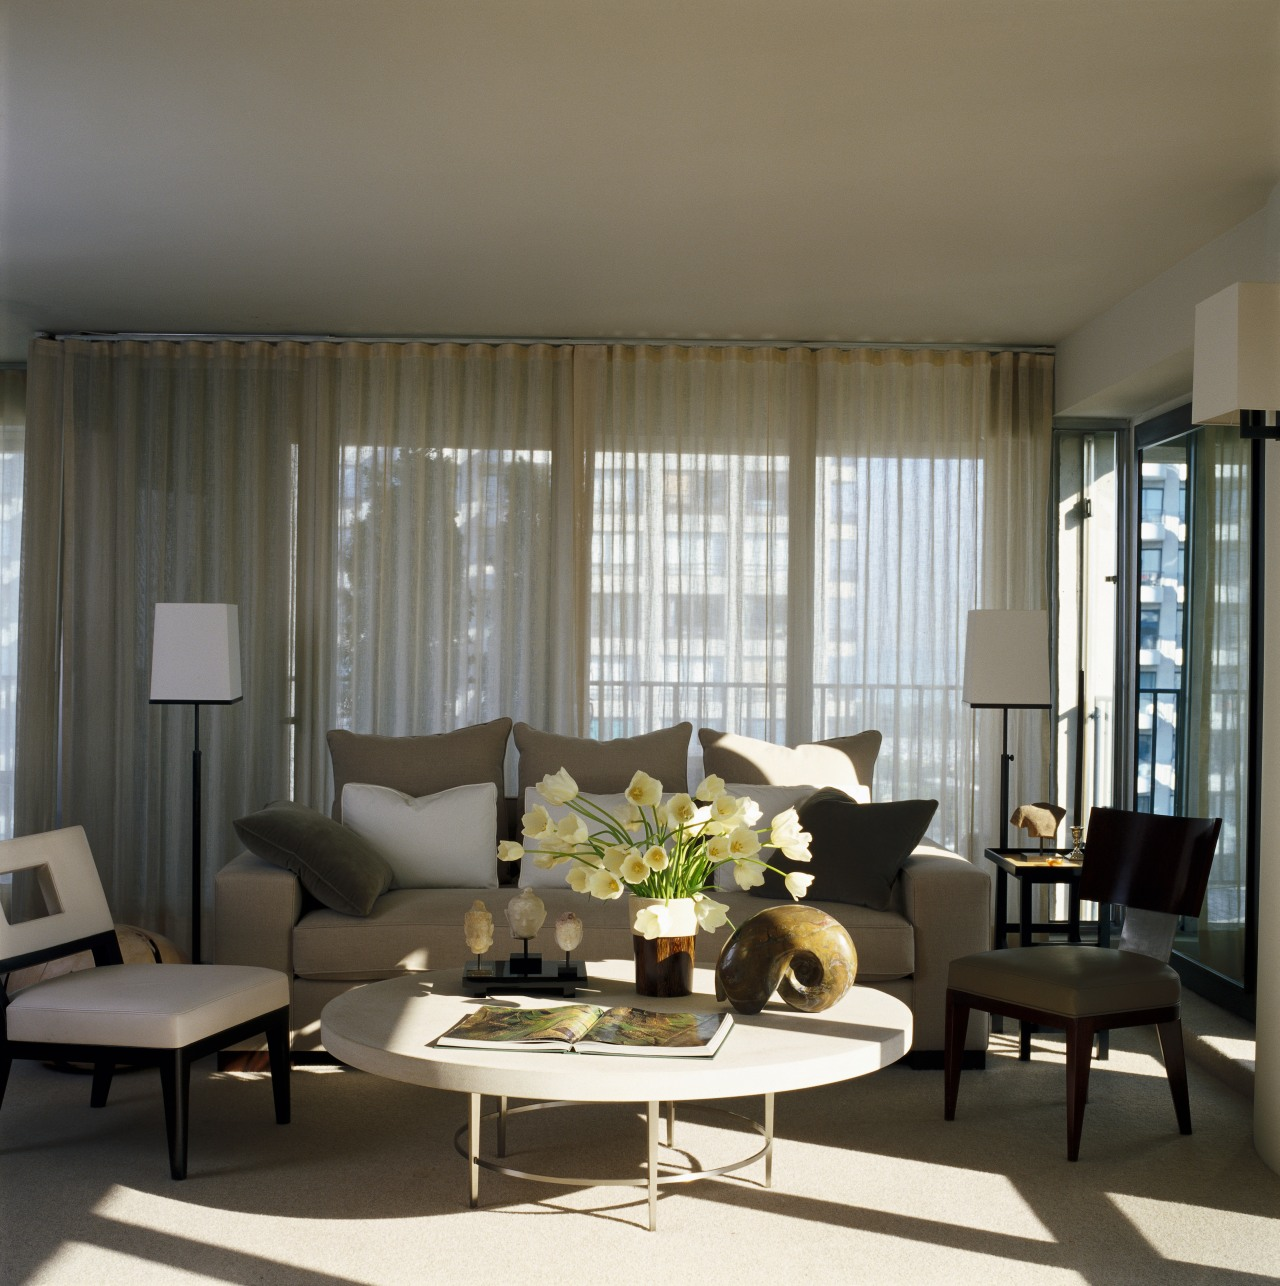 View of rooms designed by Handman Associates. ceiling, curtain, furniture, home, interior design, living room, room, table, window, window blind, window covering, window treatment, gray